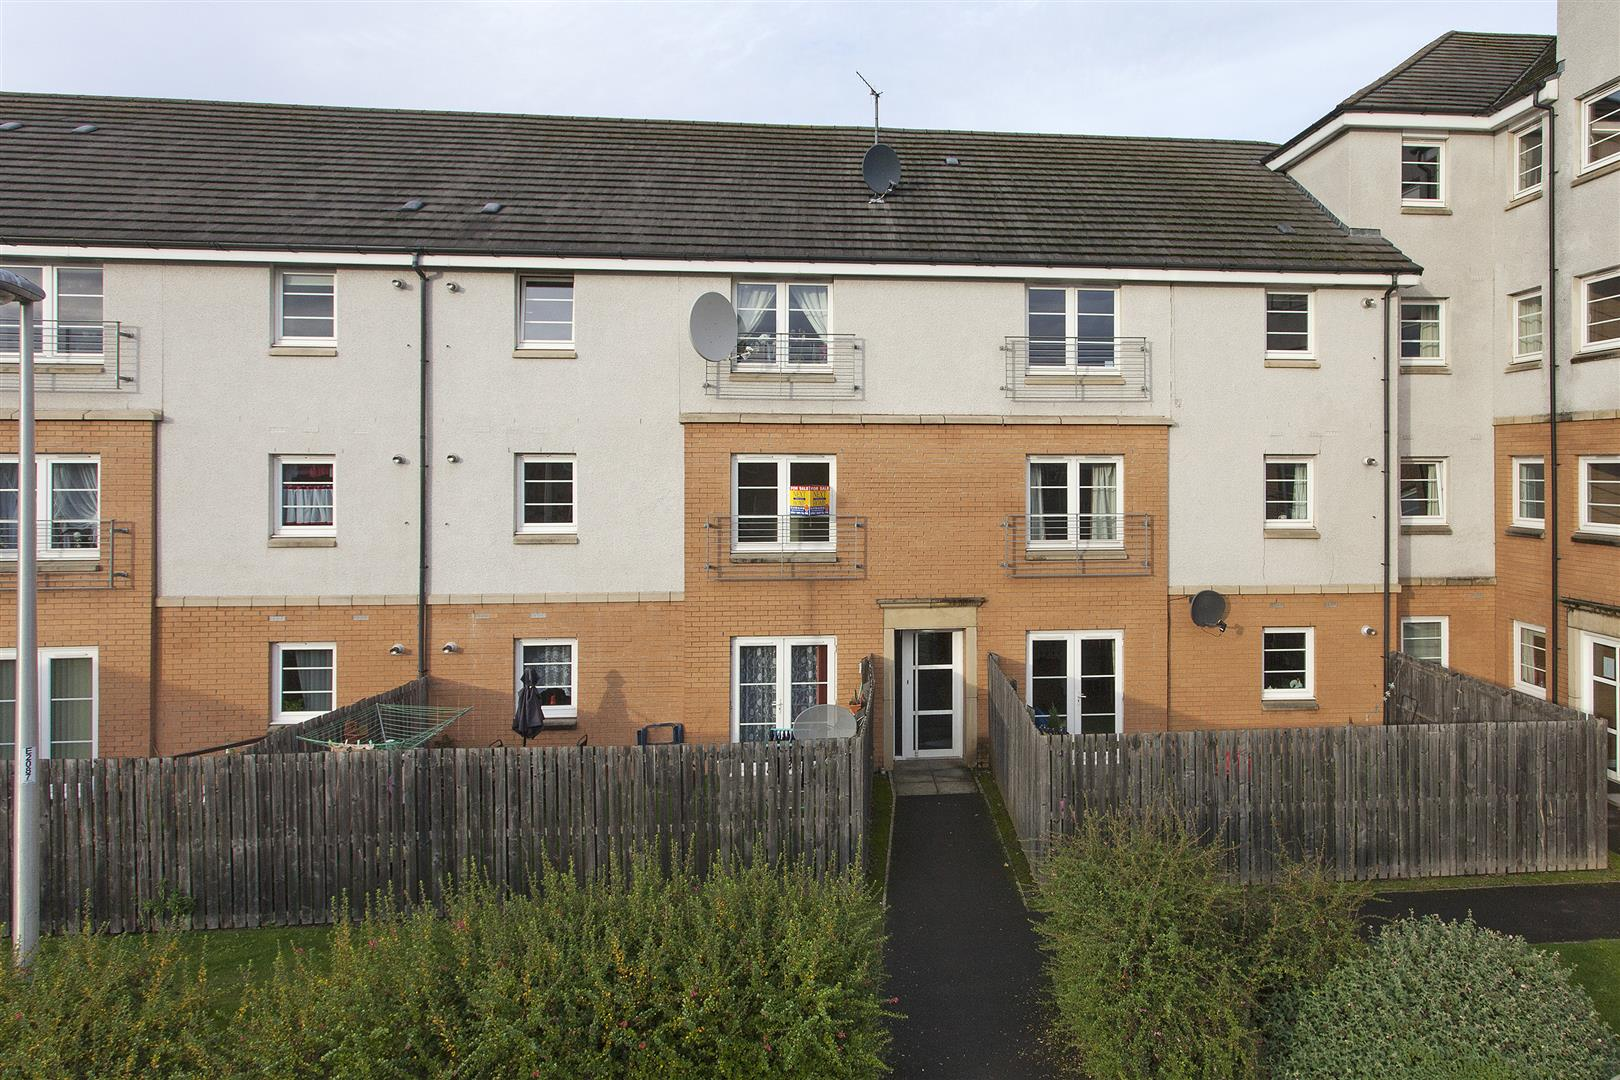 34 Florence Court, Florence Place, Perth, Perthshire, PH1 5BL, UK